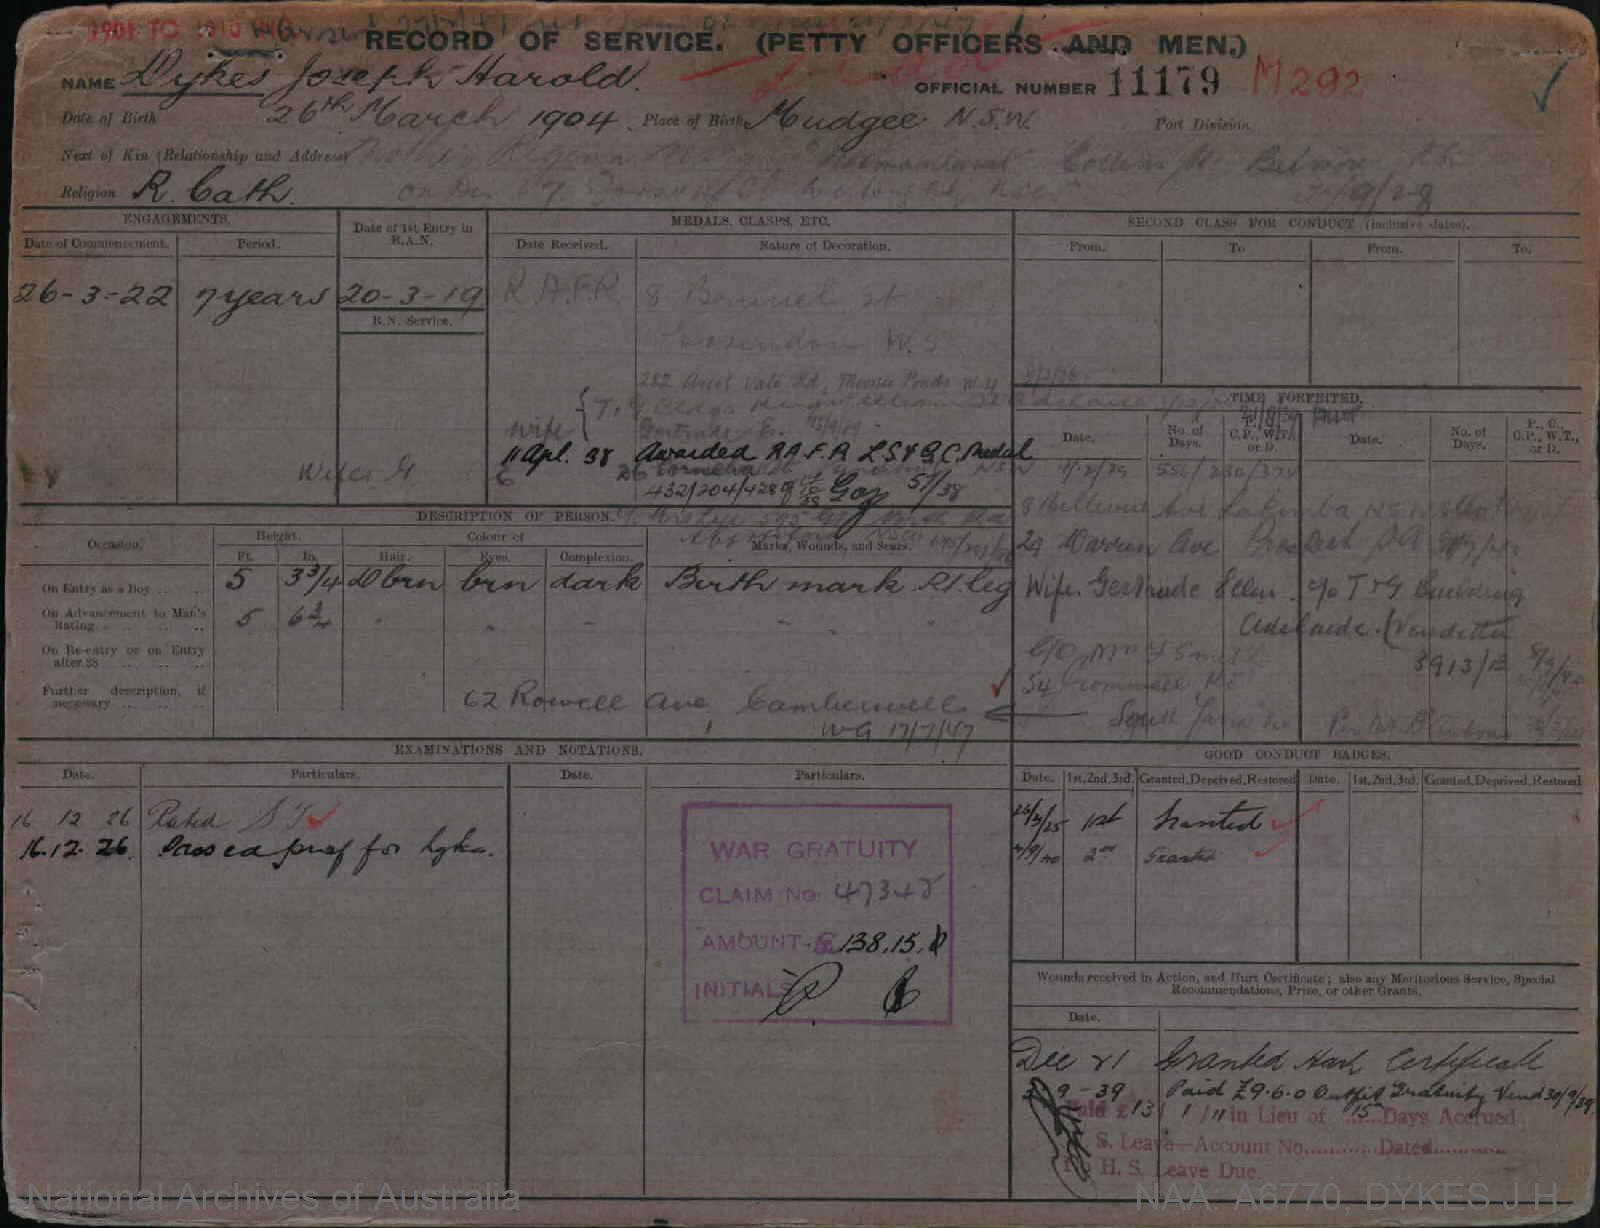 DYKES JOSEPH HAROLD : Service Number - 11179 : Date of birth - 26 Mar 1904 : Place of birth - MUDGEE NSW : Place of enlistment - Unknown : Next of Kin - GERTRUDE